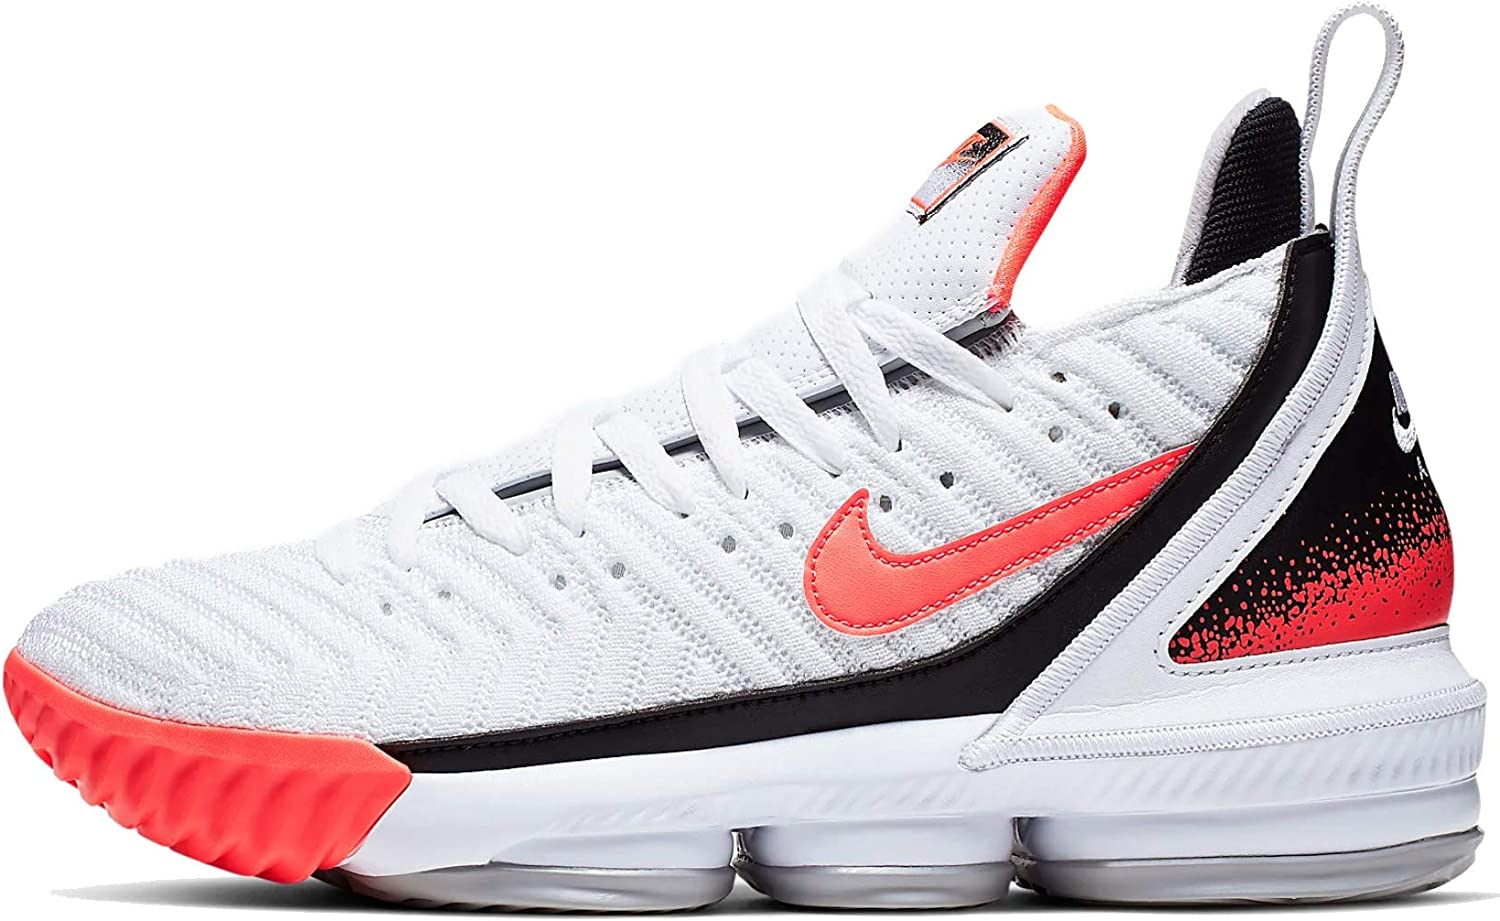 Nike Lebron XVI Shoes 白い/Flat 銀/Hot Lava CI1521-100 Size 14